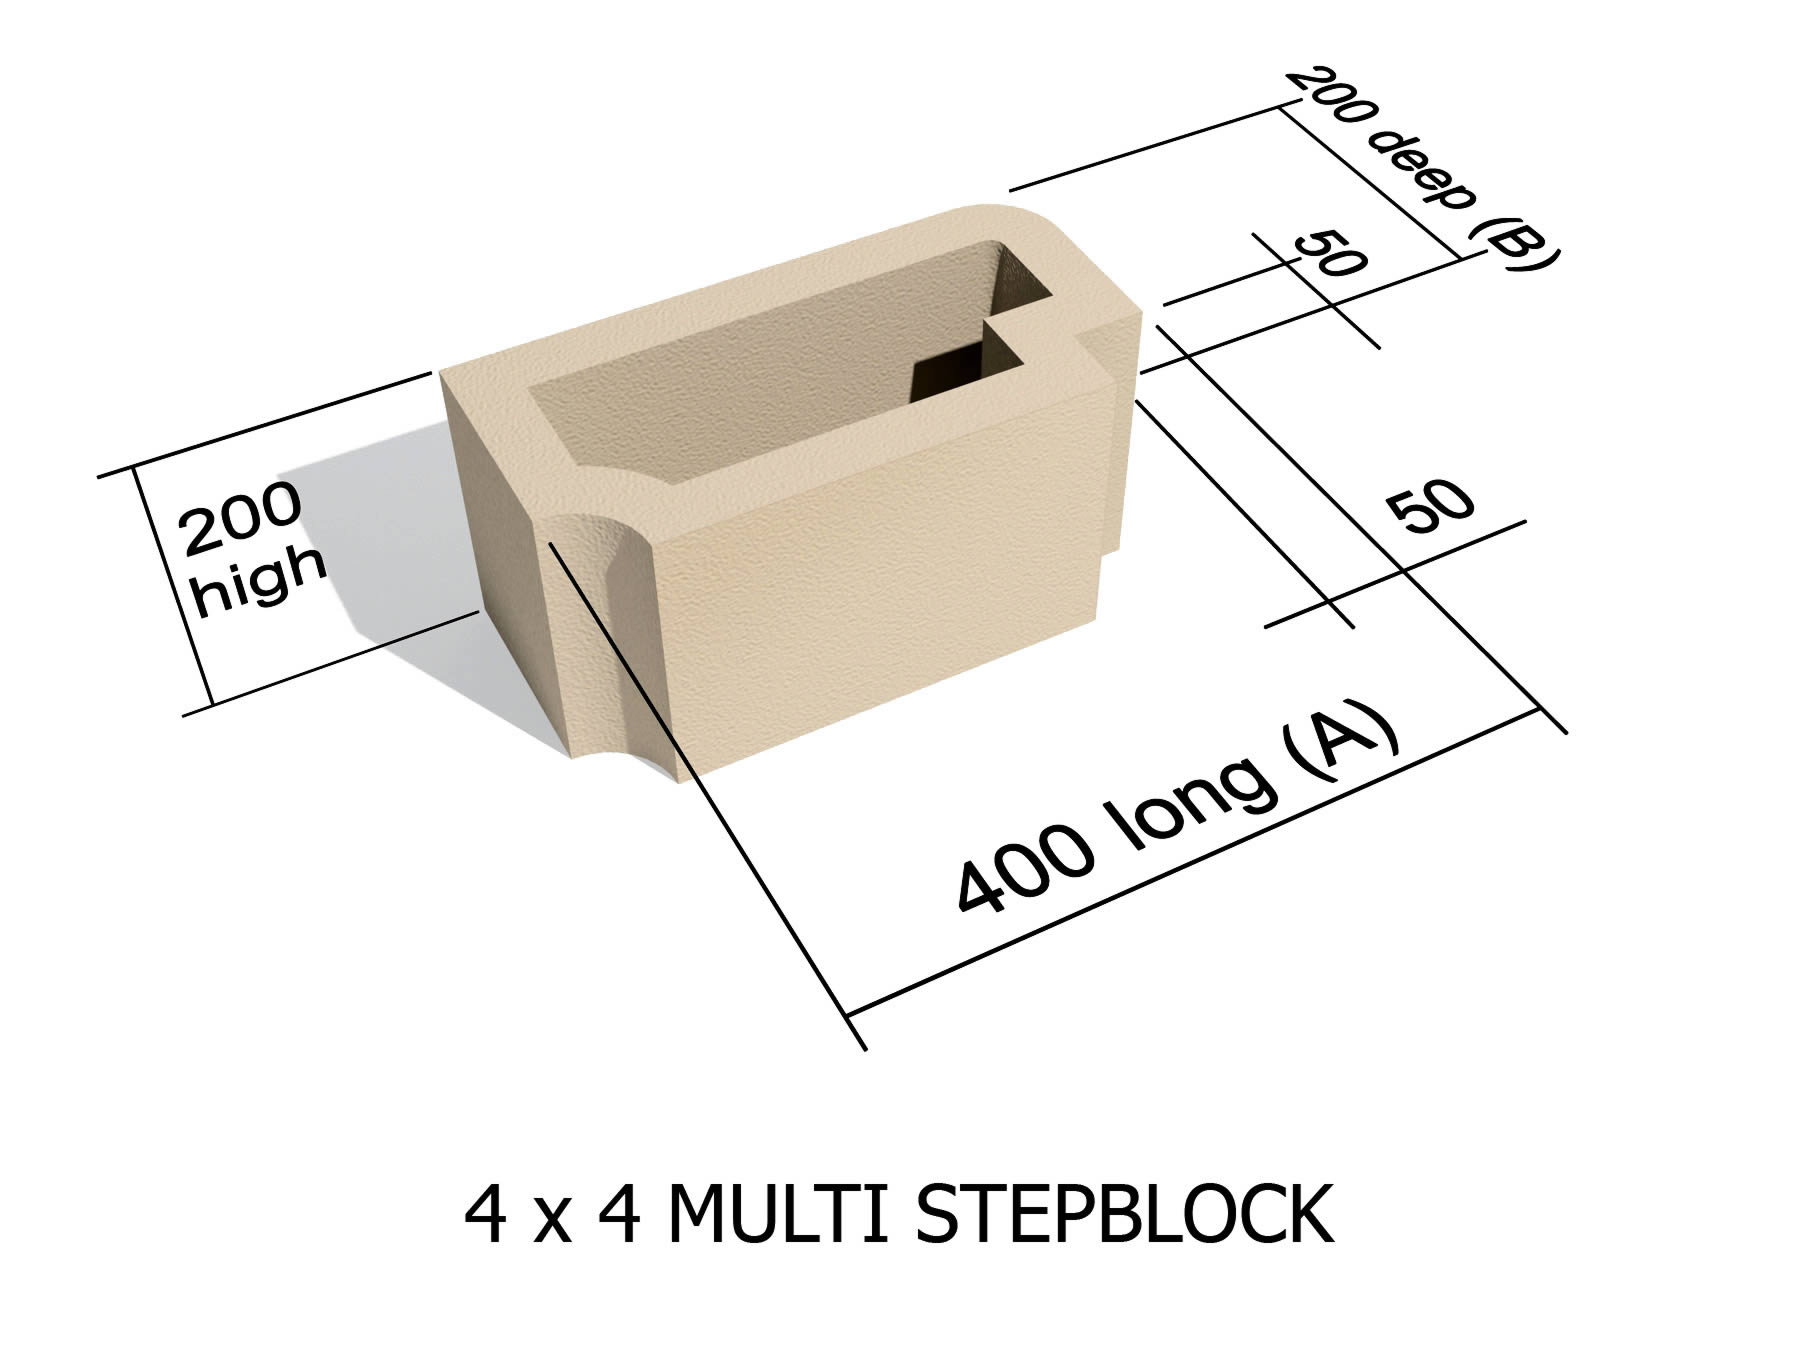 4 x 4 Step block for stairs